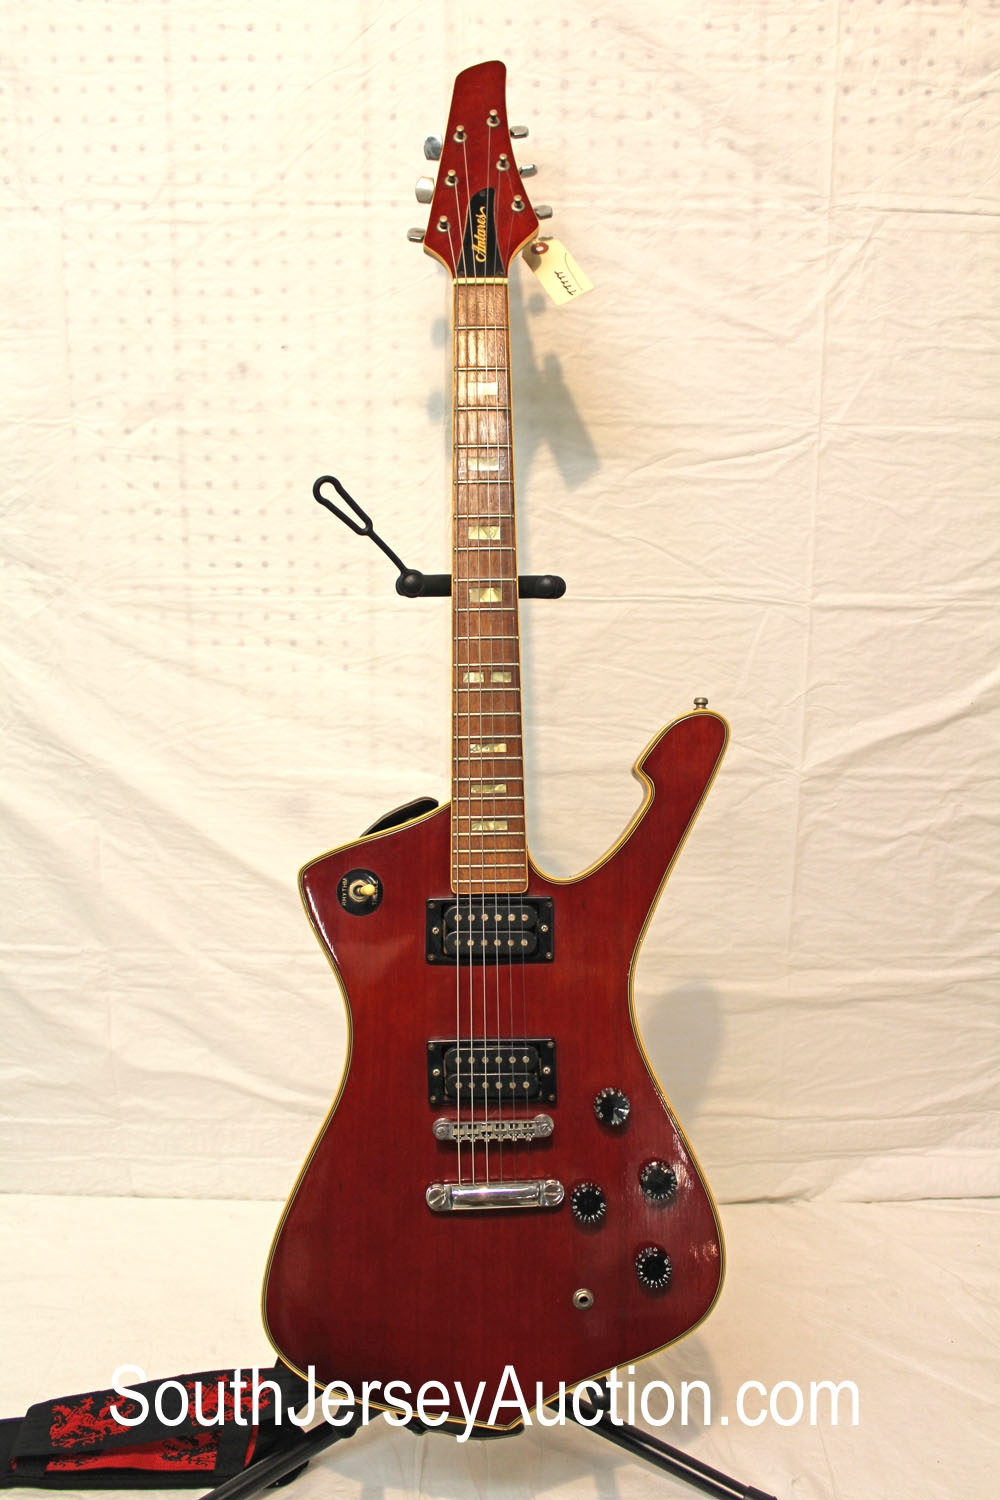 1980 Antares, Iceman Copy, lawsuit era, dimarzio pickups, RARE, in the wine color, mahogany fretwork, painted head stock, with strap, good condition for age